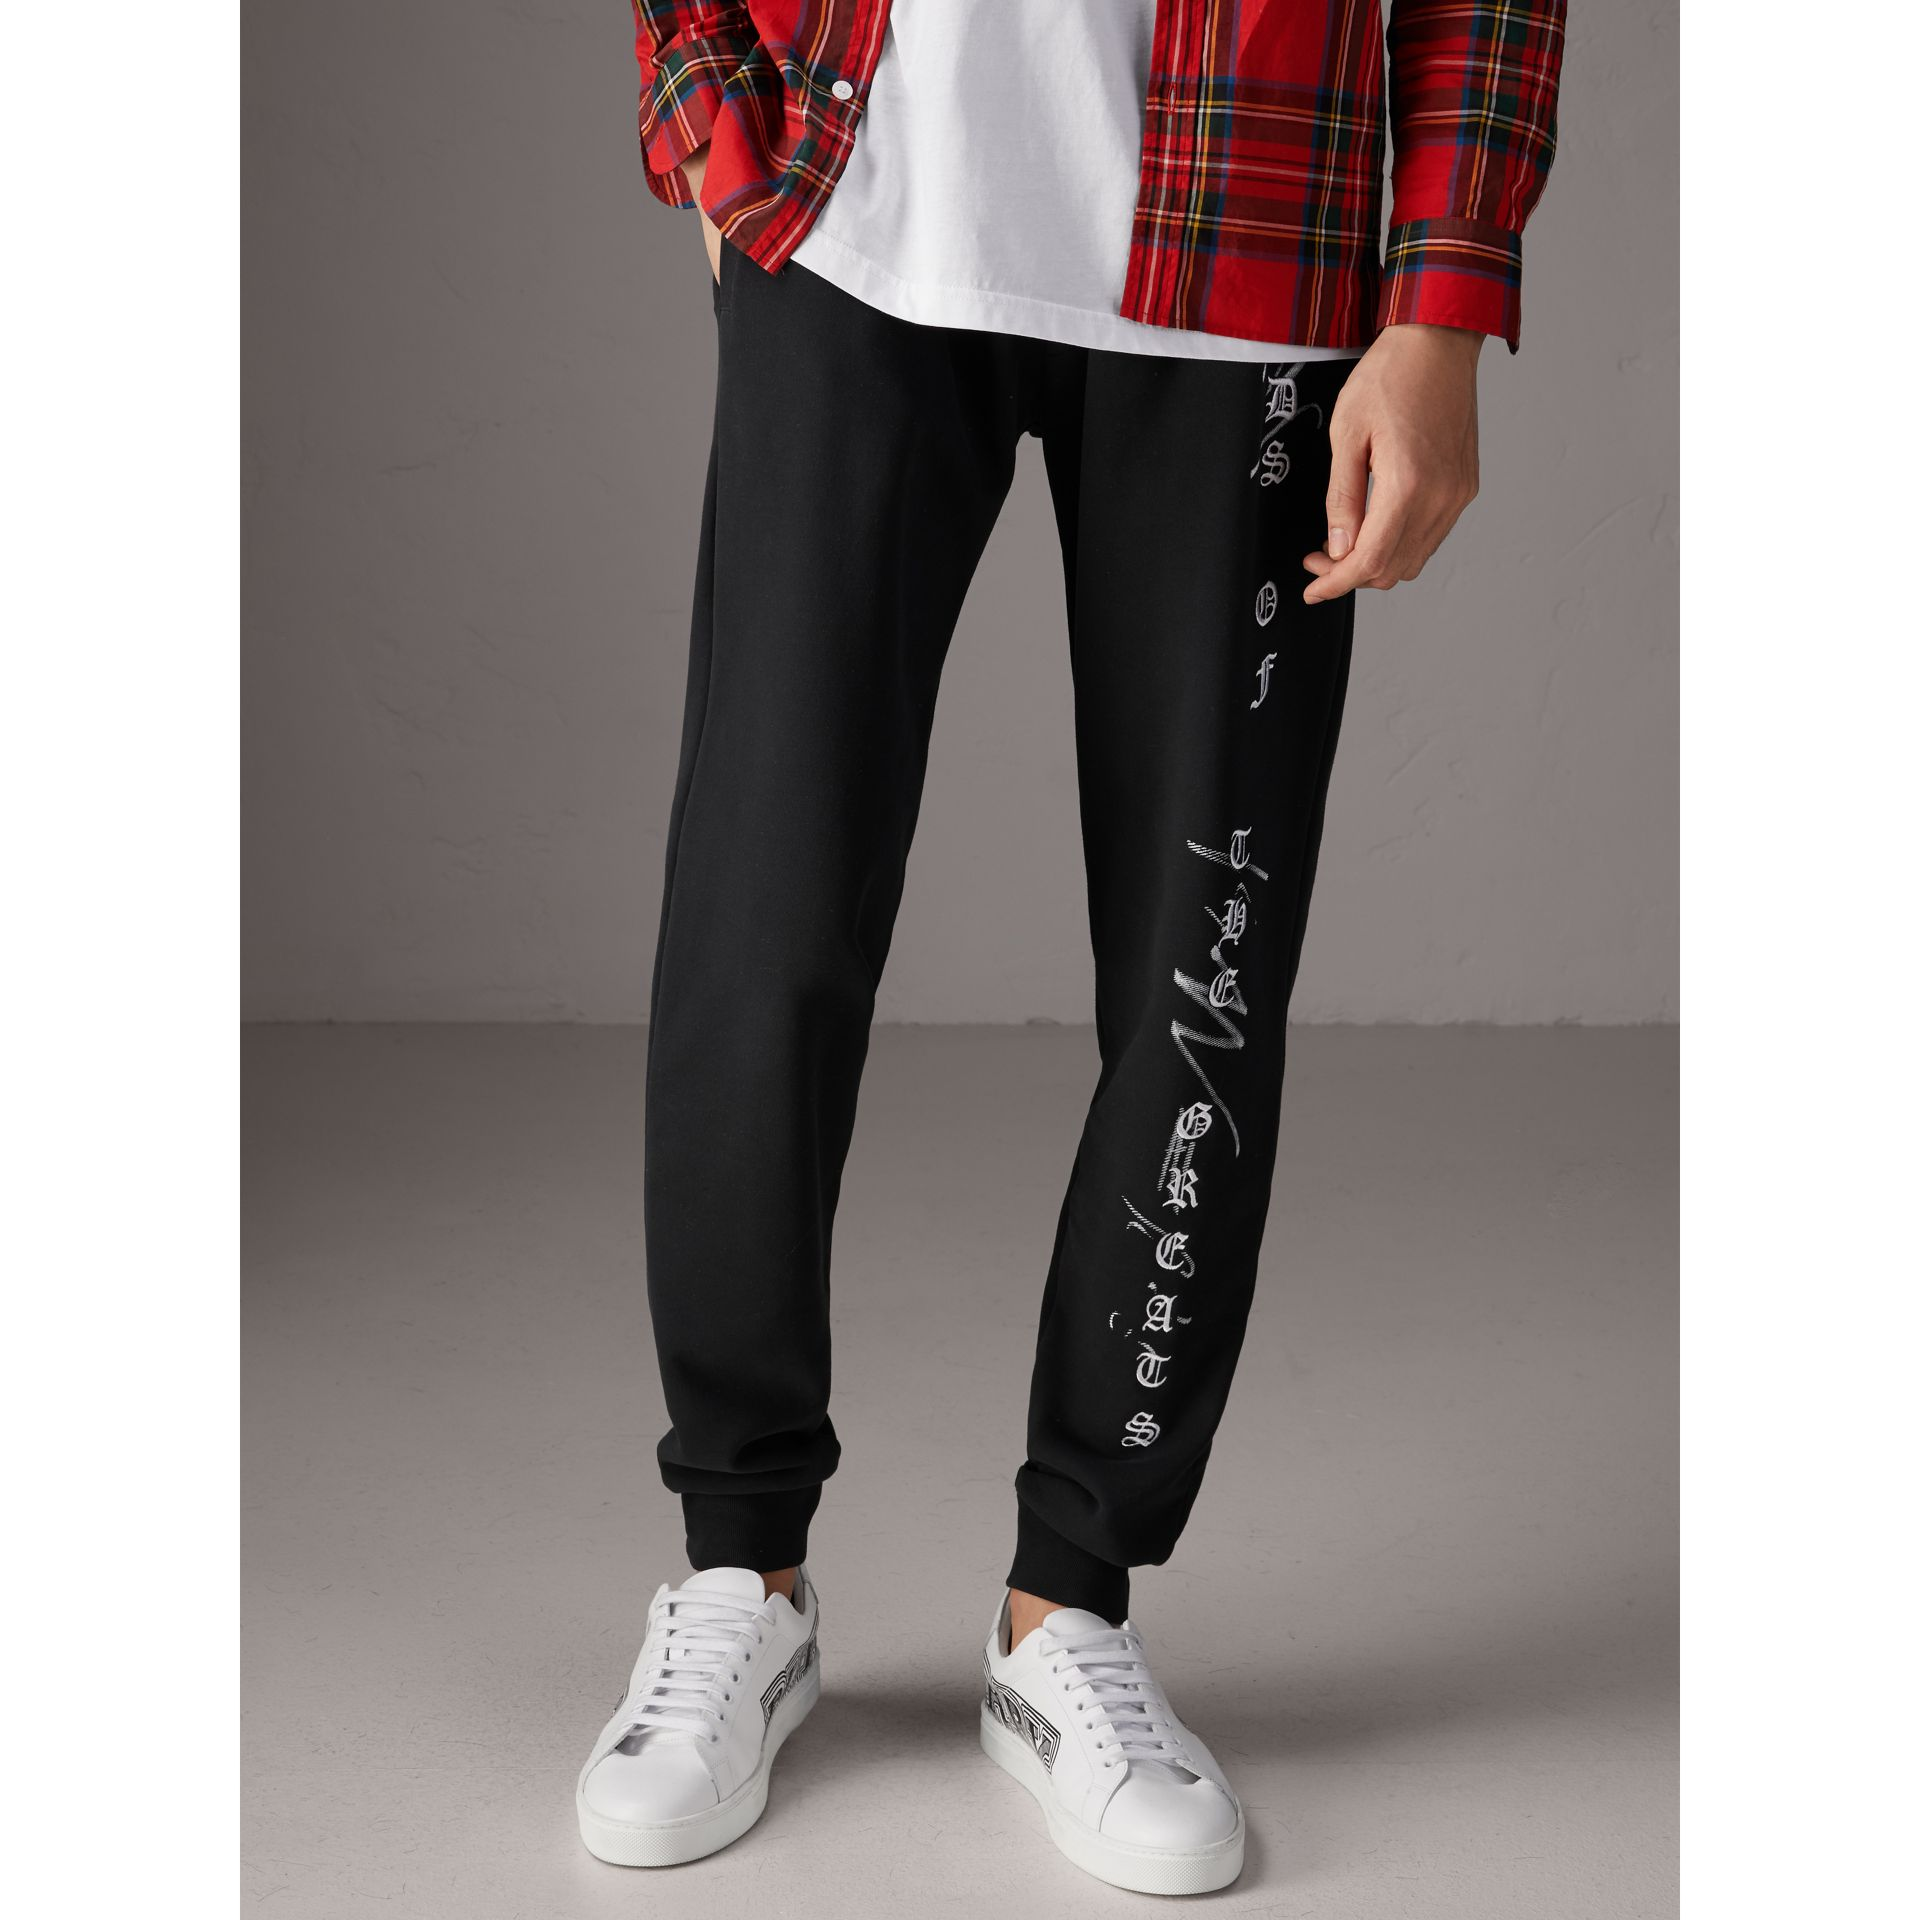 Burberry x Kris Wu Graphic Motif Sweatpants in Black - Men | Burberry - gallery image 4